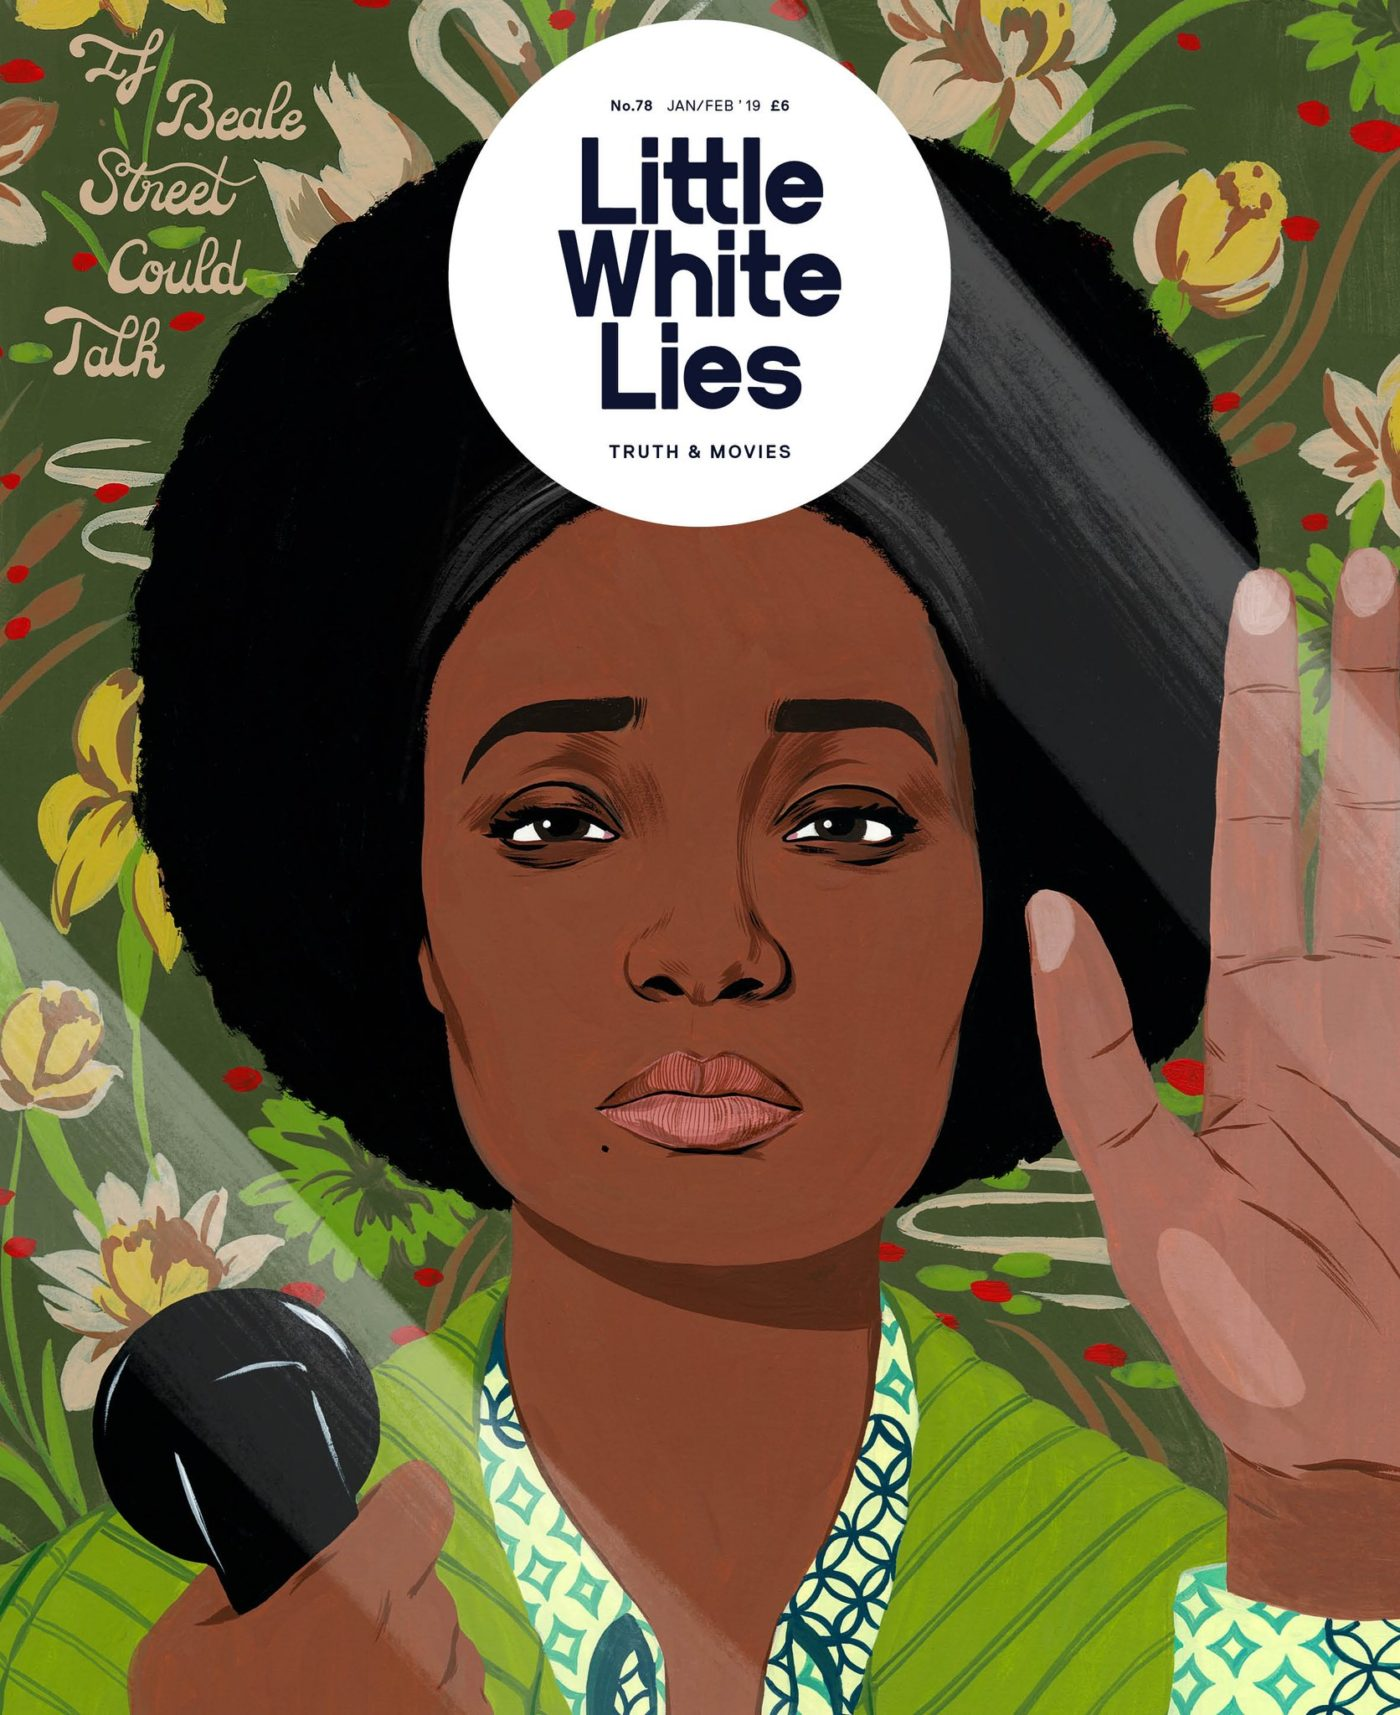 Little White Lies #78: Se a Rua Beale Falasse